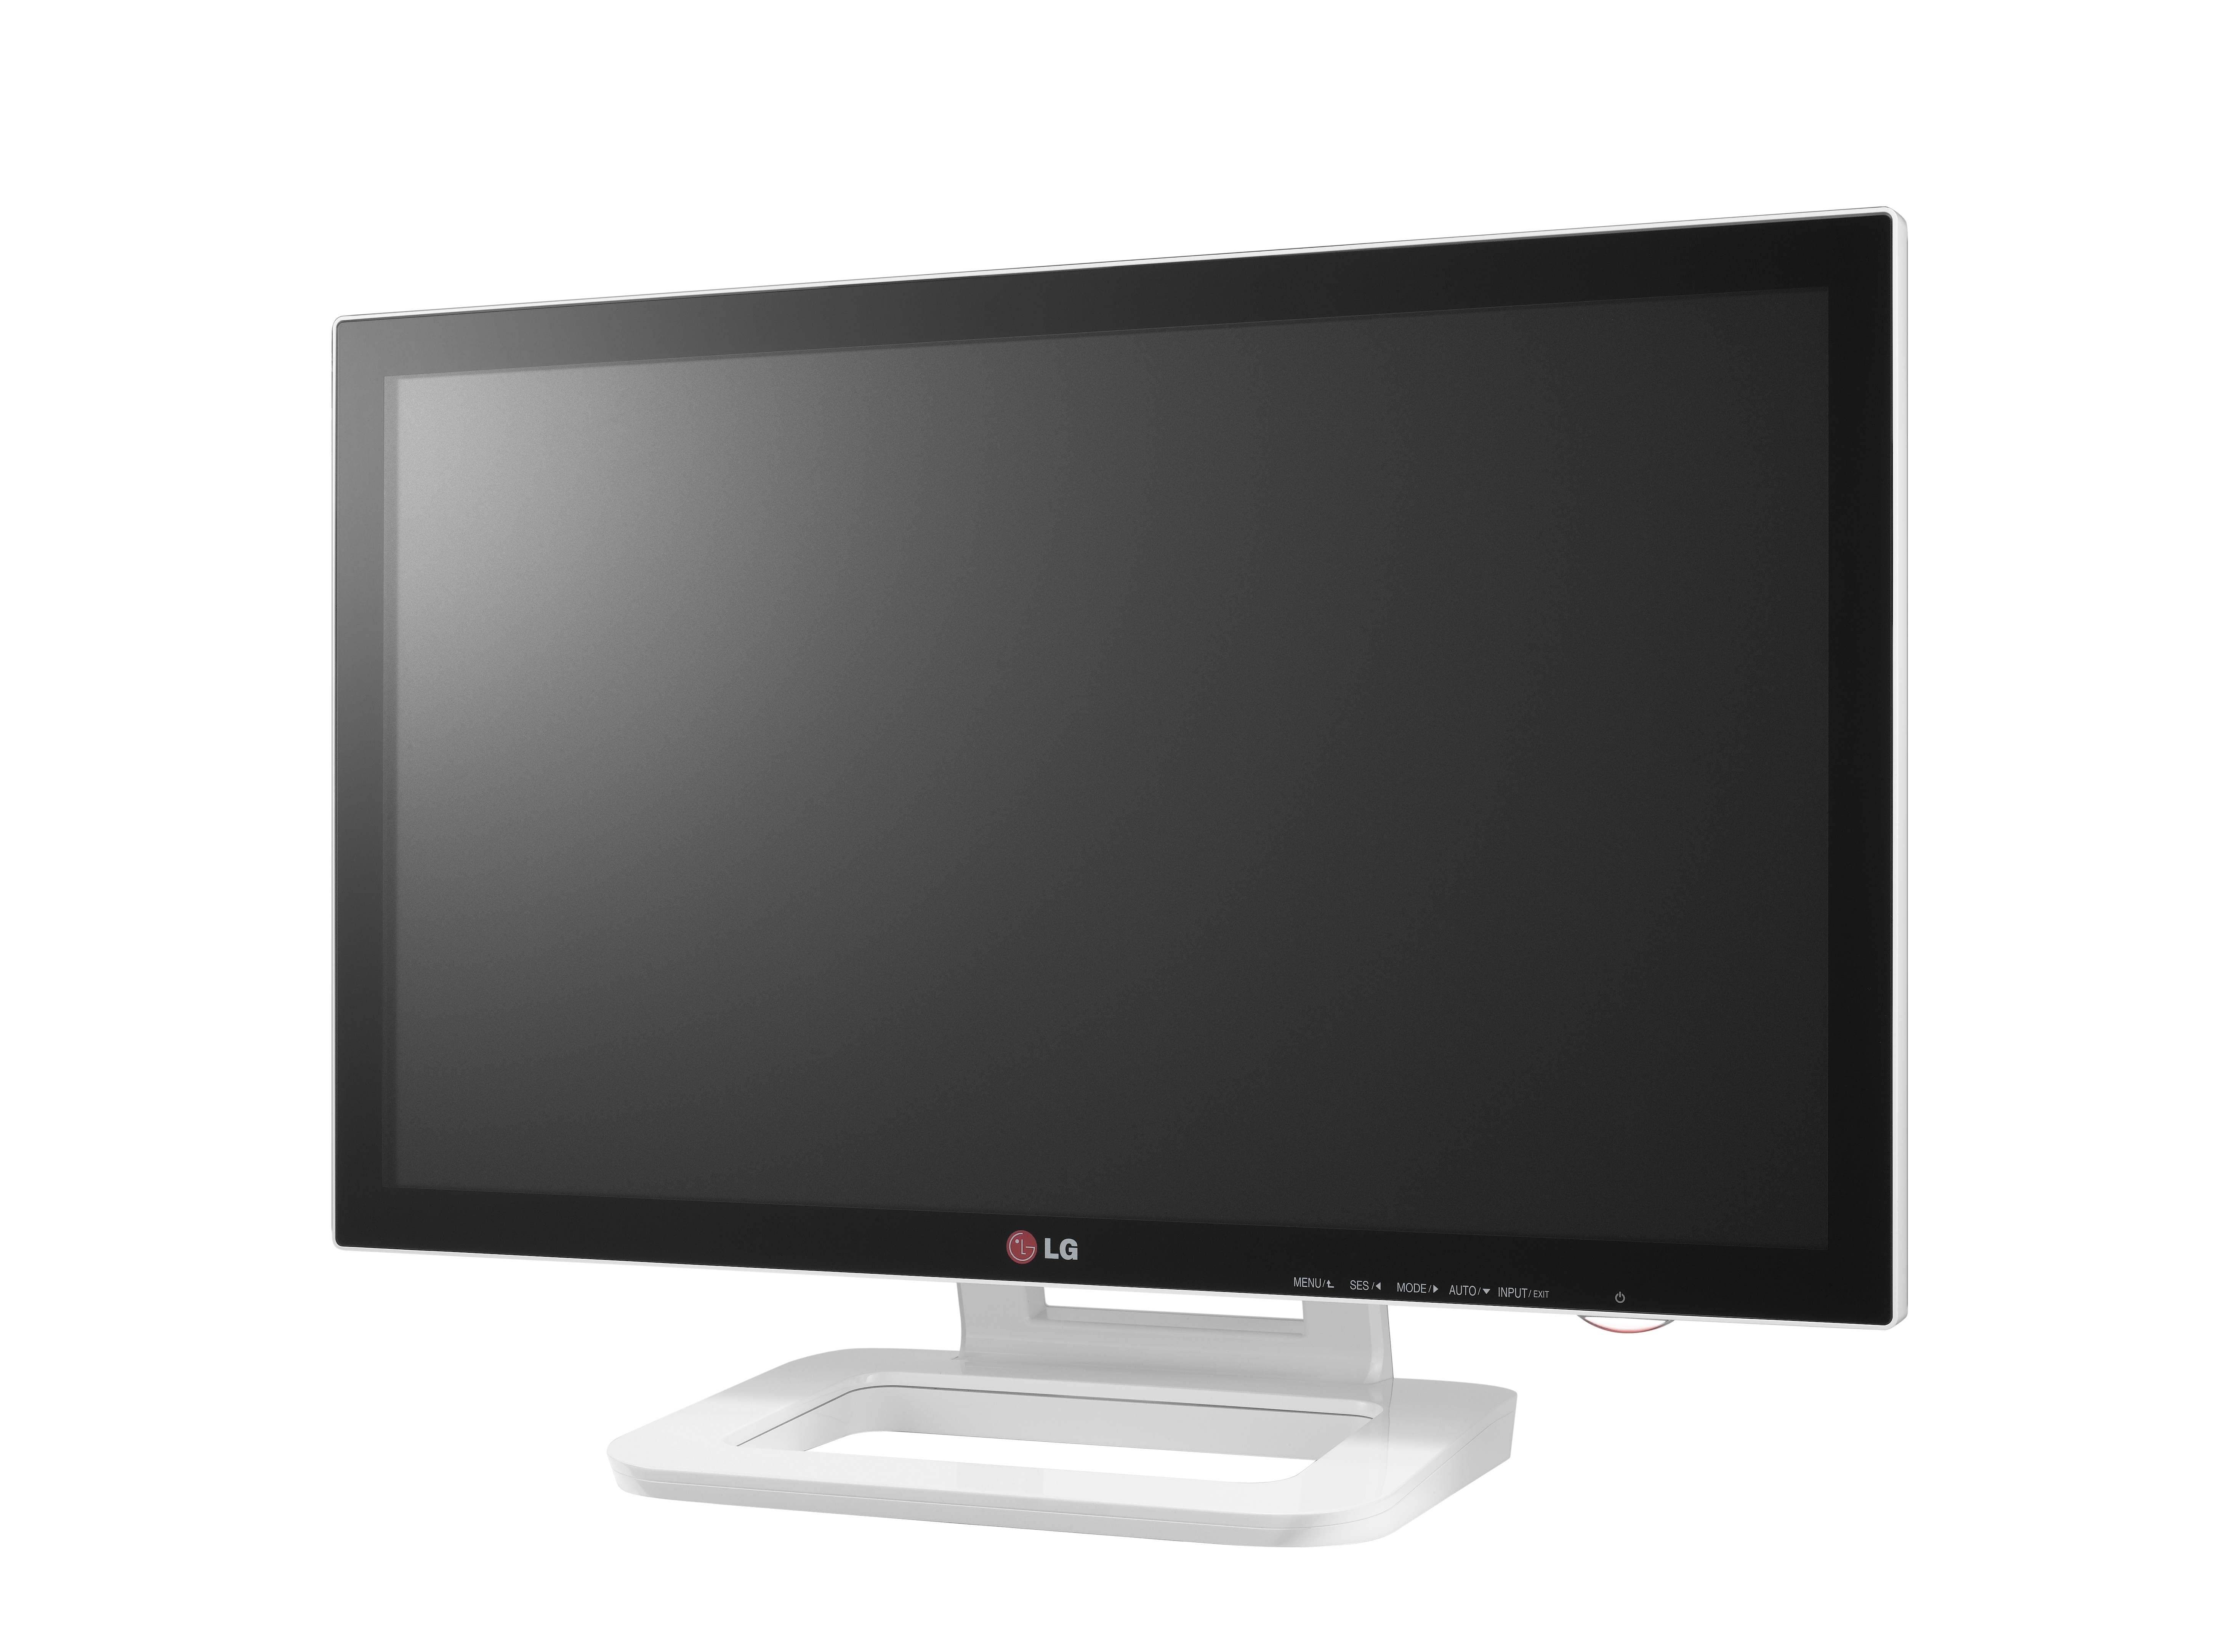 A right-side view of LG Touch 10 monitor model ET83